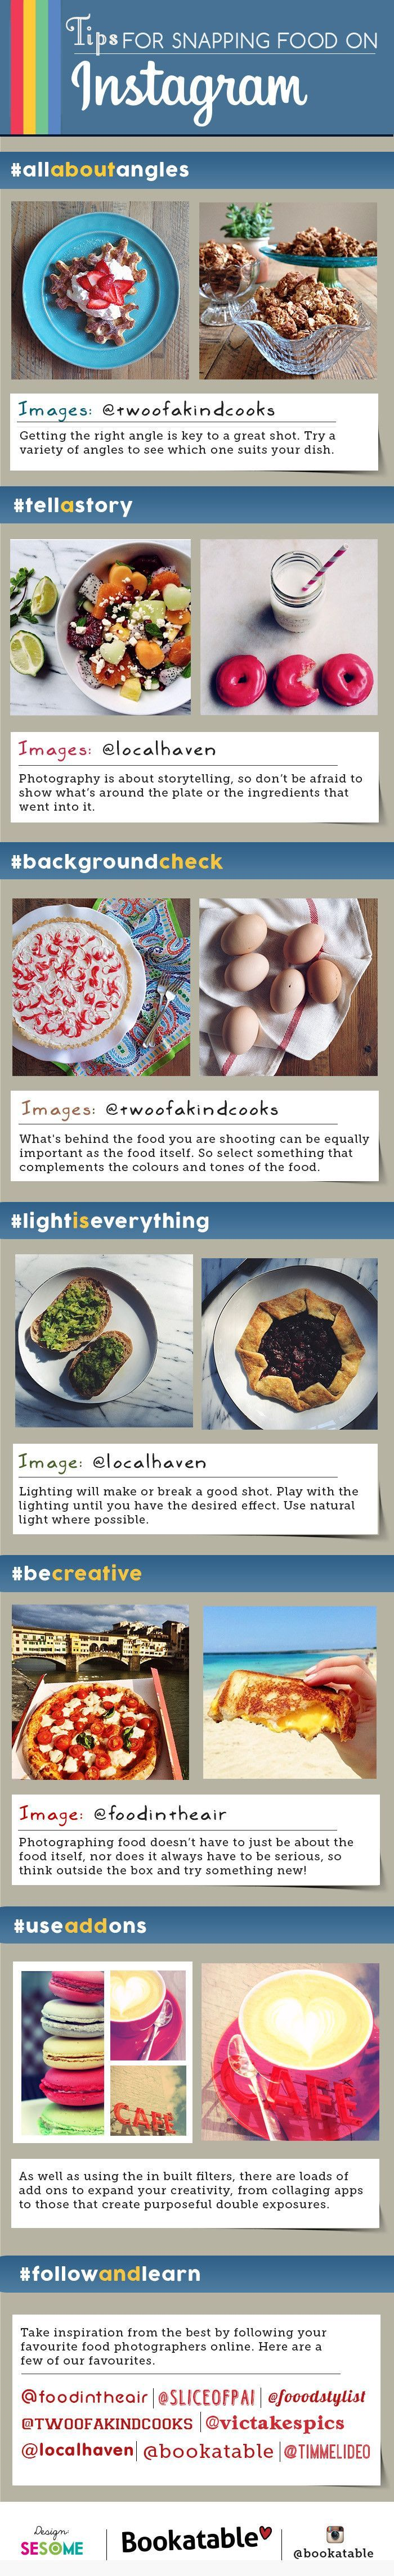 Tips For Snapping Food On Instagram   #Instagram #Food #SocialMedia - shared by http://ginastorr.com